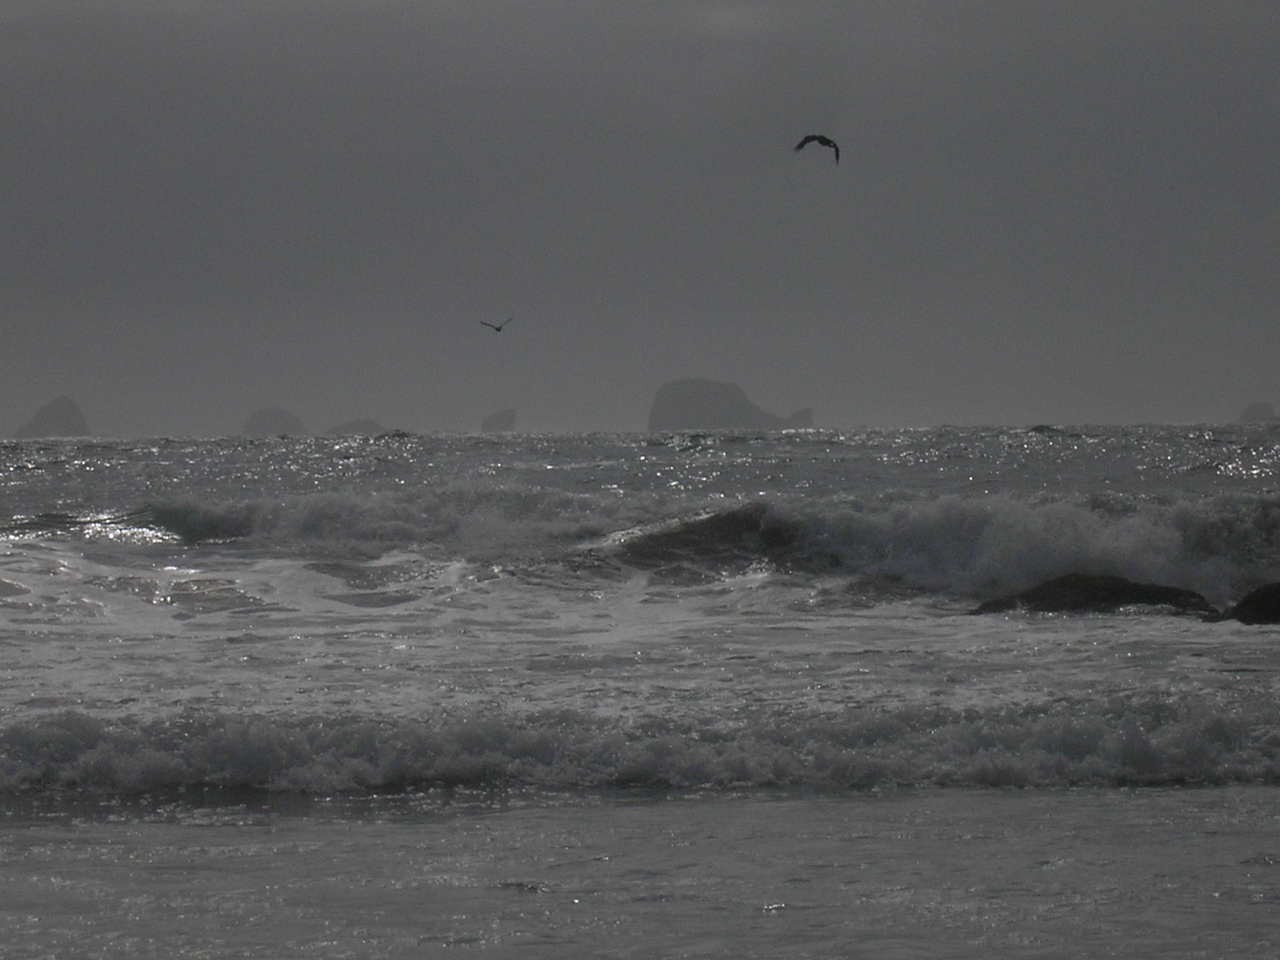 This is a color photo, but the skies were overcast and grey so that is how the ocean looked.